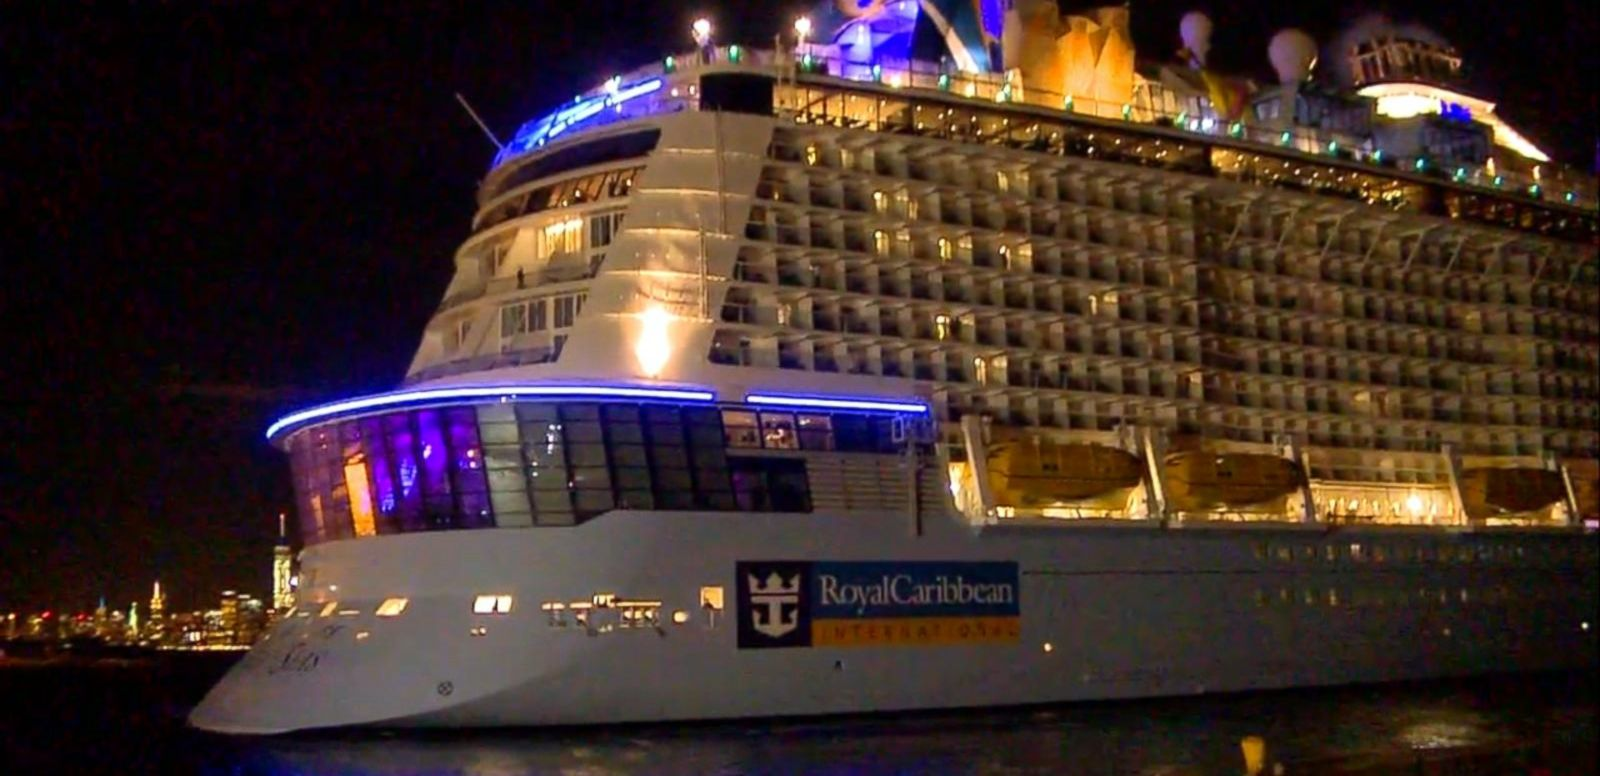 VIDEO: Cruise Ship Battered by Storm Returns to NJ